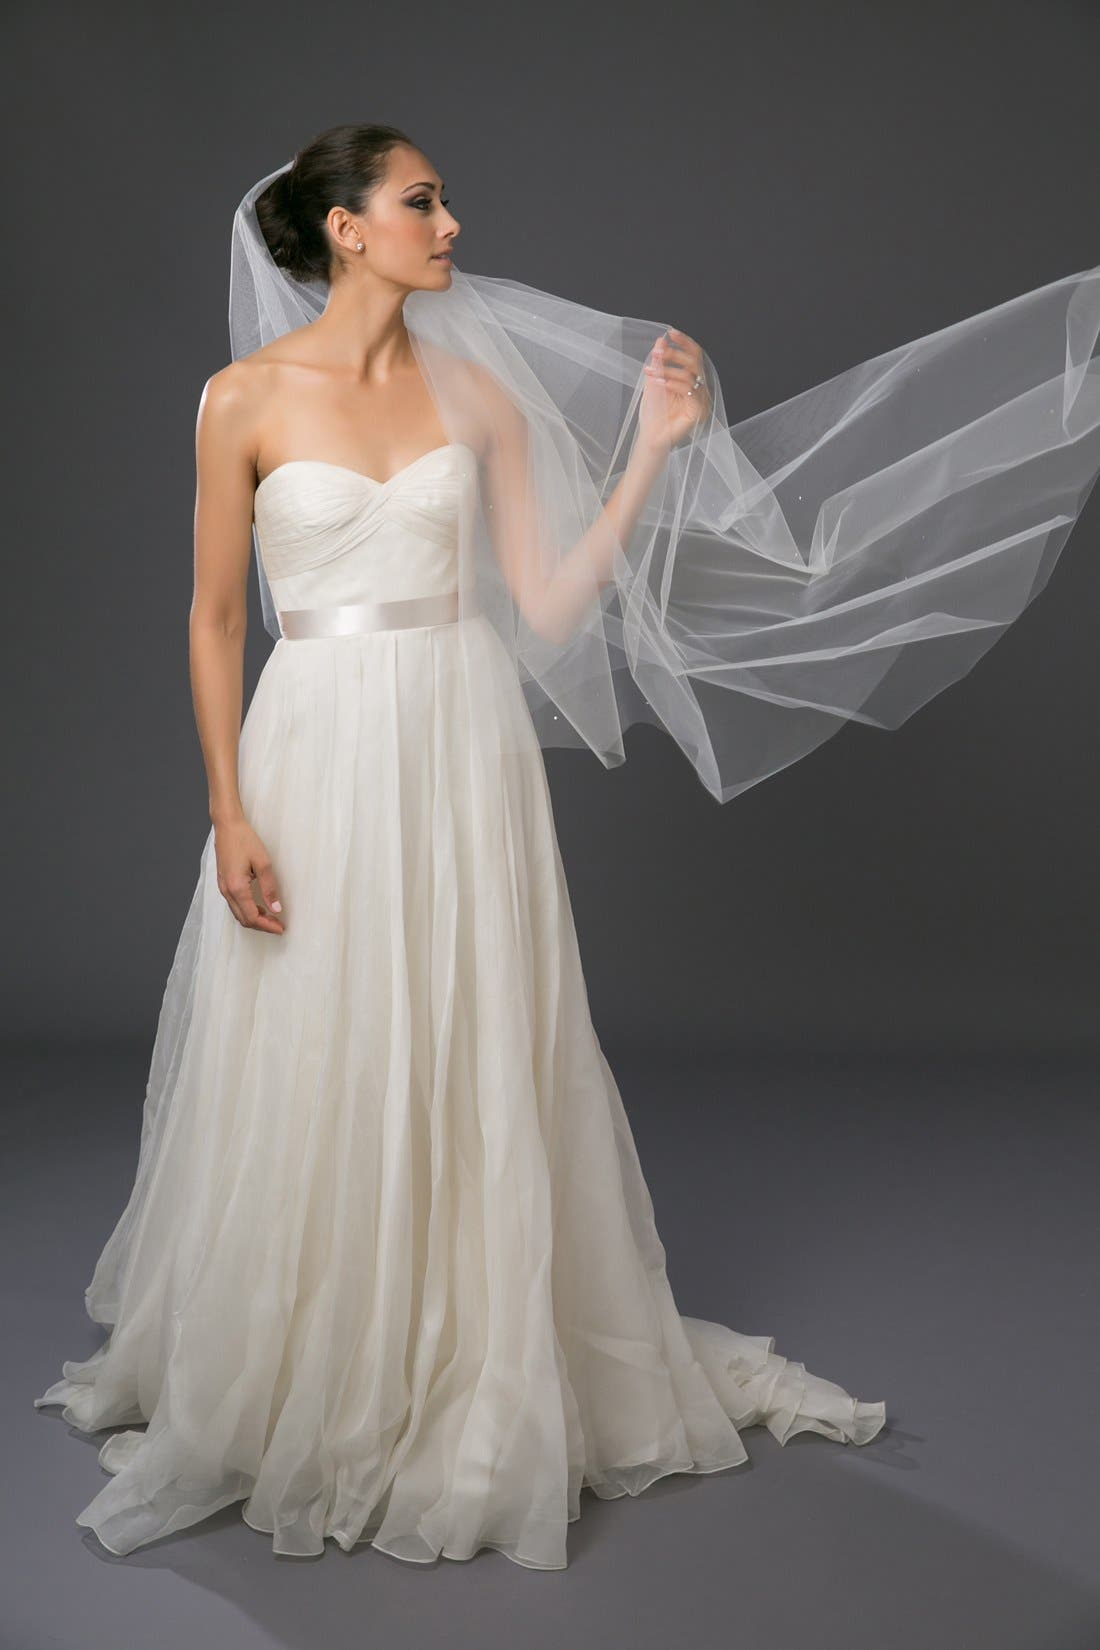 'Chakra' Circle Cut Waltz Length Veil,                             Alternate thumbnail 3, color,                             LIGHT IVORY